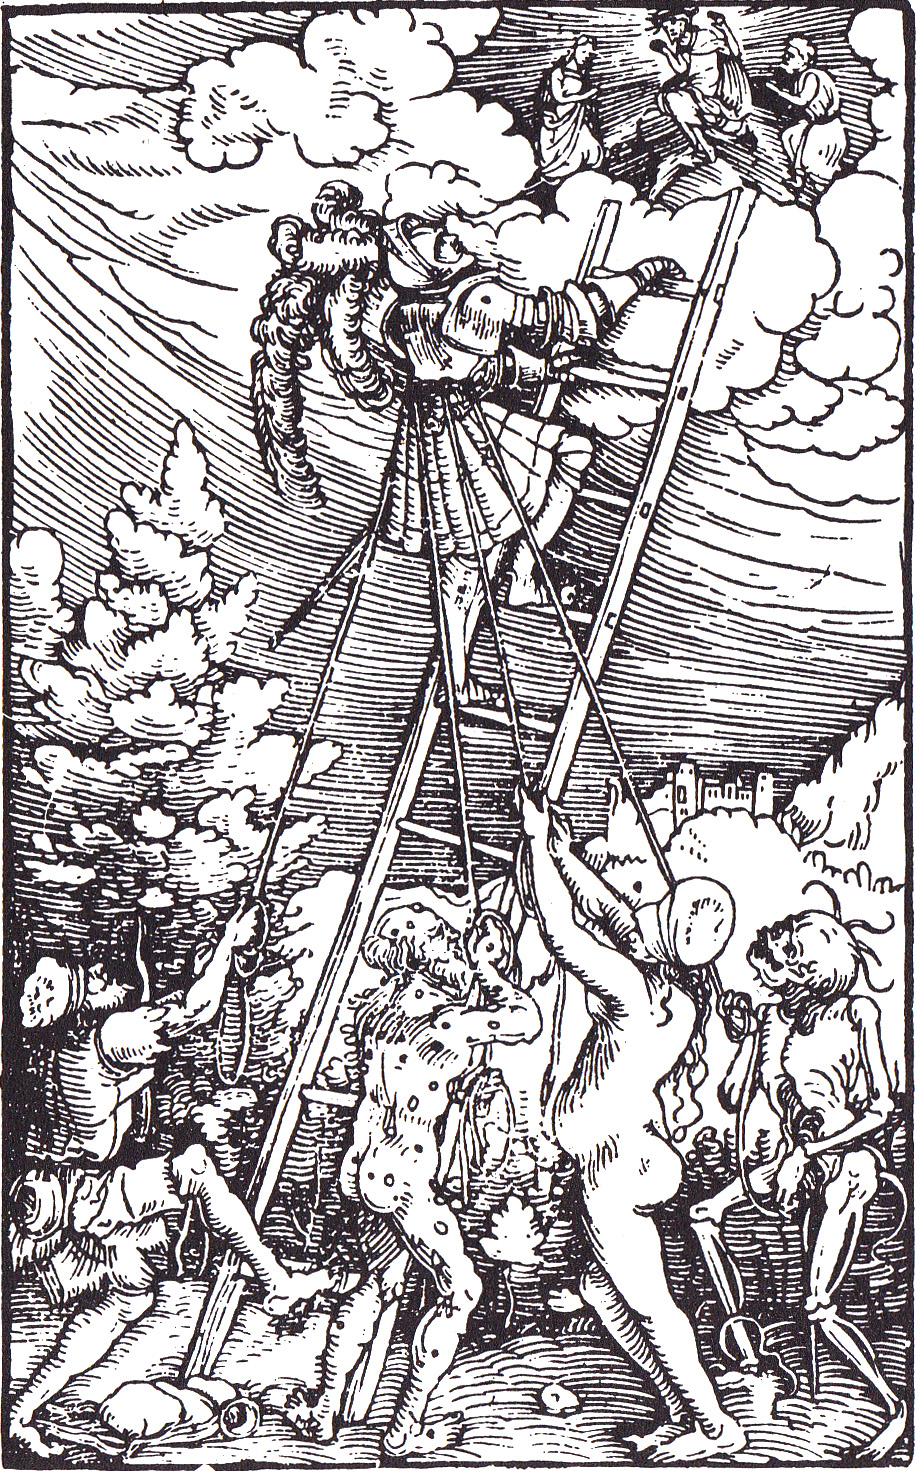 A woodcut of poverty, sickness, lust and death thwarting the ascension to heaven. Illustration from a 1531 edition of Cicero's De Officiis.